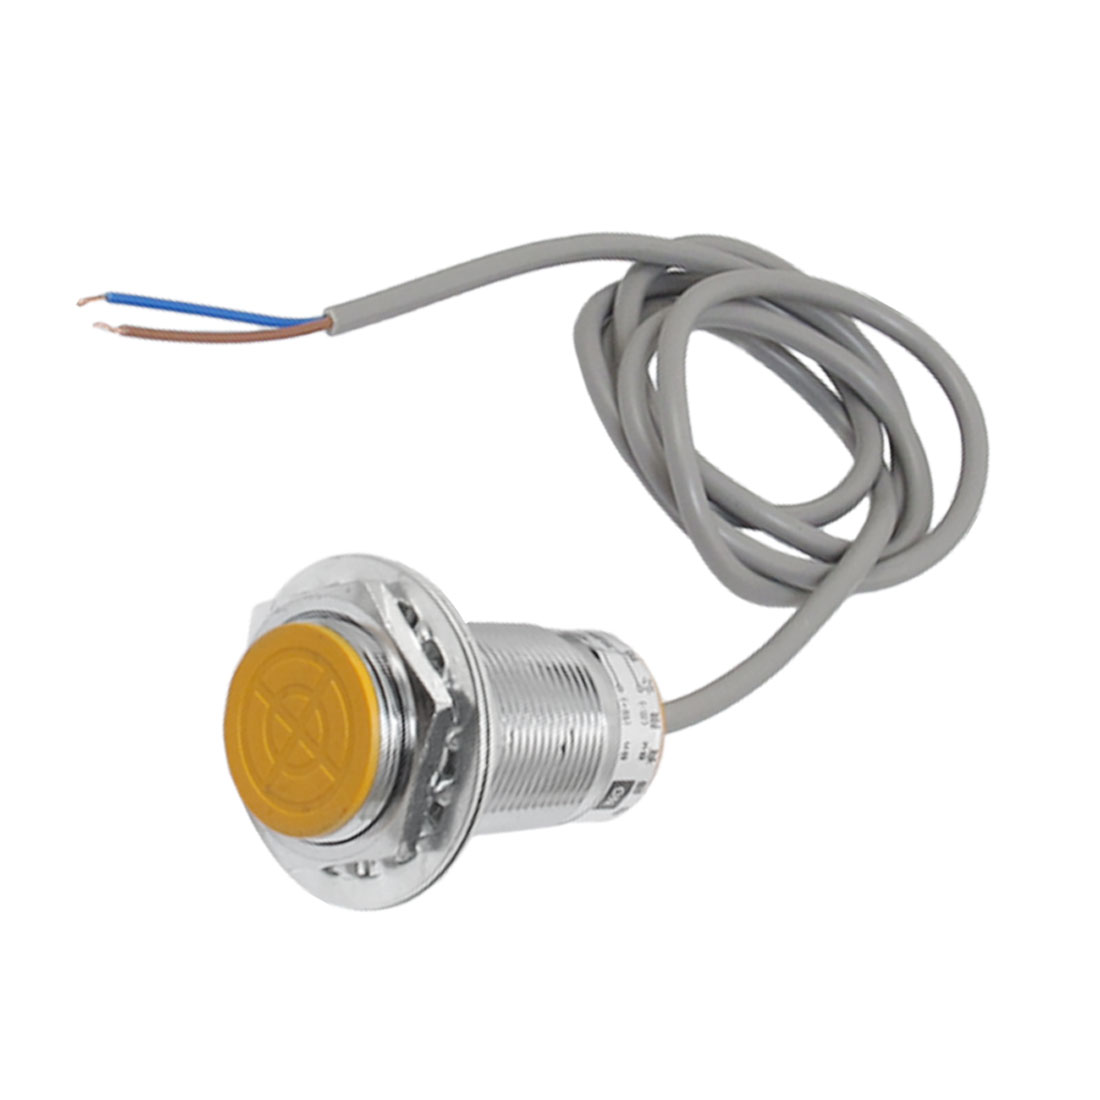 AC 90-250V 400mA NO 2-Wire 1-10mm Inductive Proximity Sensor Switch LJ30A3-10-J/E